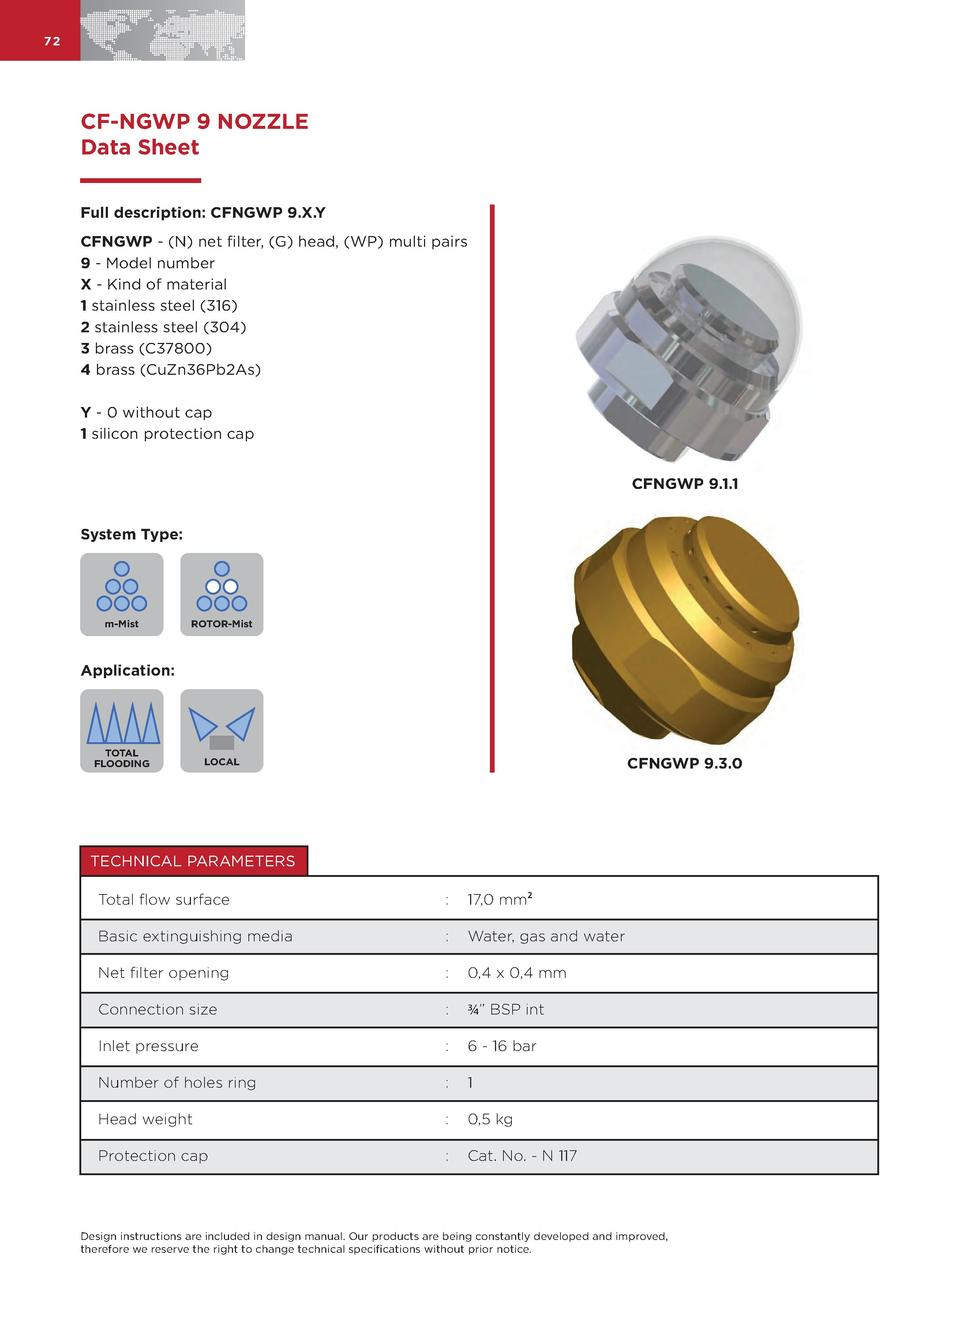 72  CF-NGWP 9 NOZZLE Data Sheet Full description  CFNGWP 9.X.Y CFNGWP -  N  net filter,  G  head,  WP  multi pairs 9 - Mod...